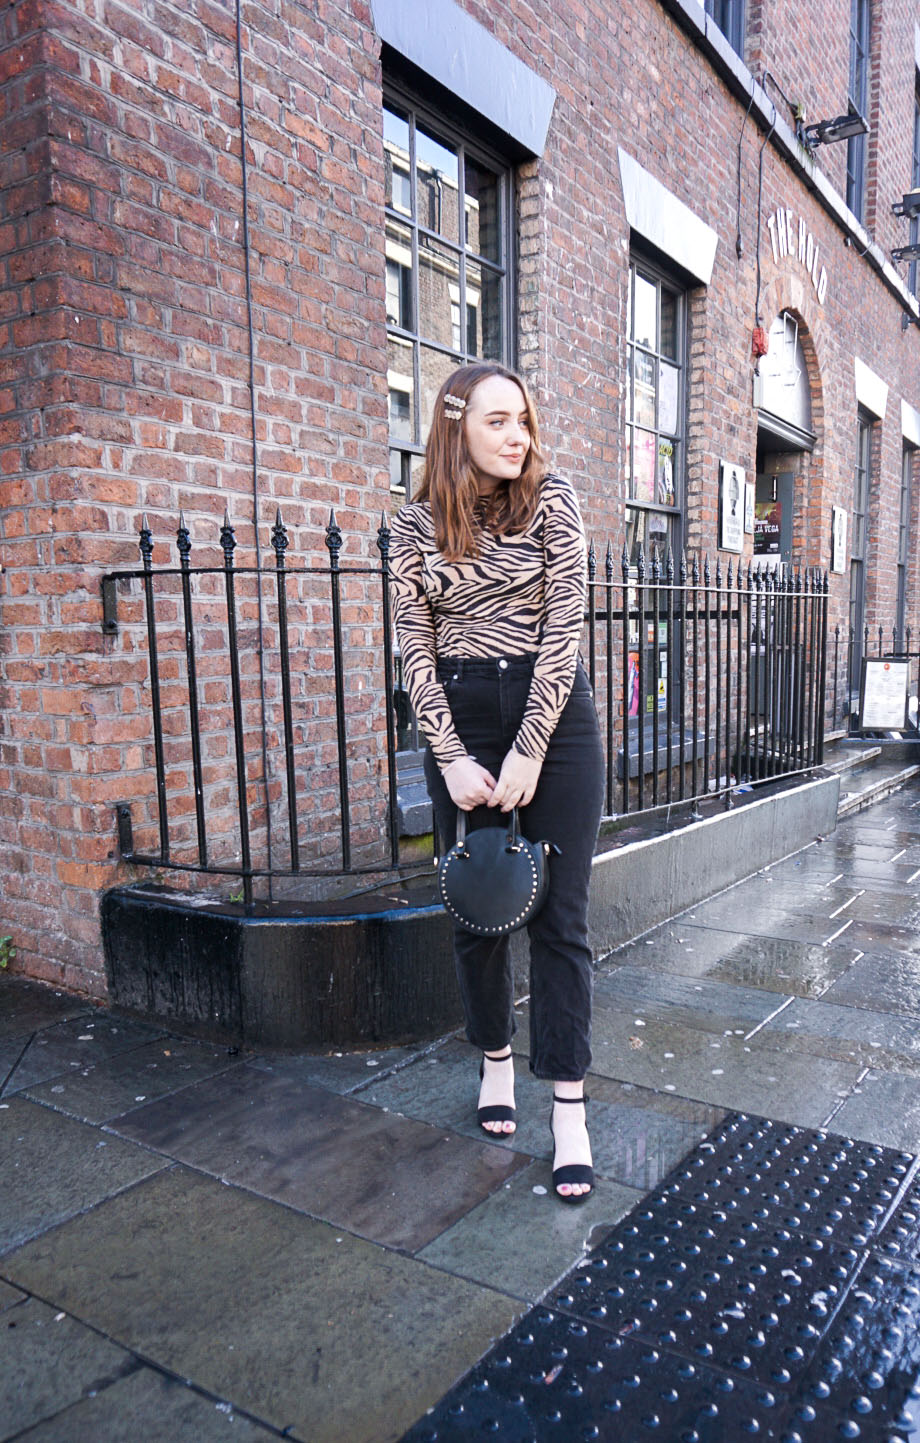 Christmas night out look: zebra print lurex top, black jeans, black and gold accessories